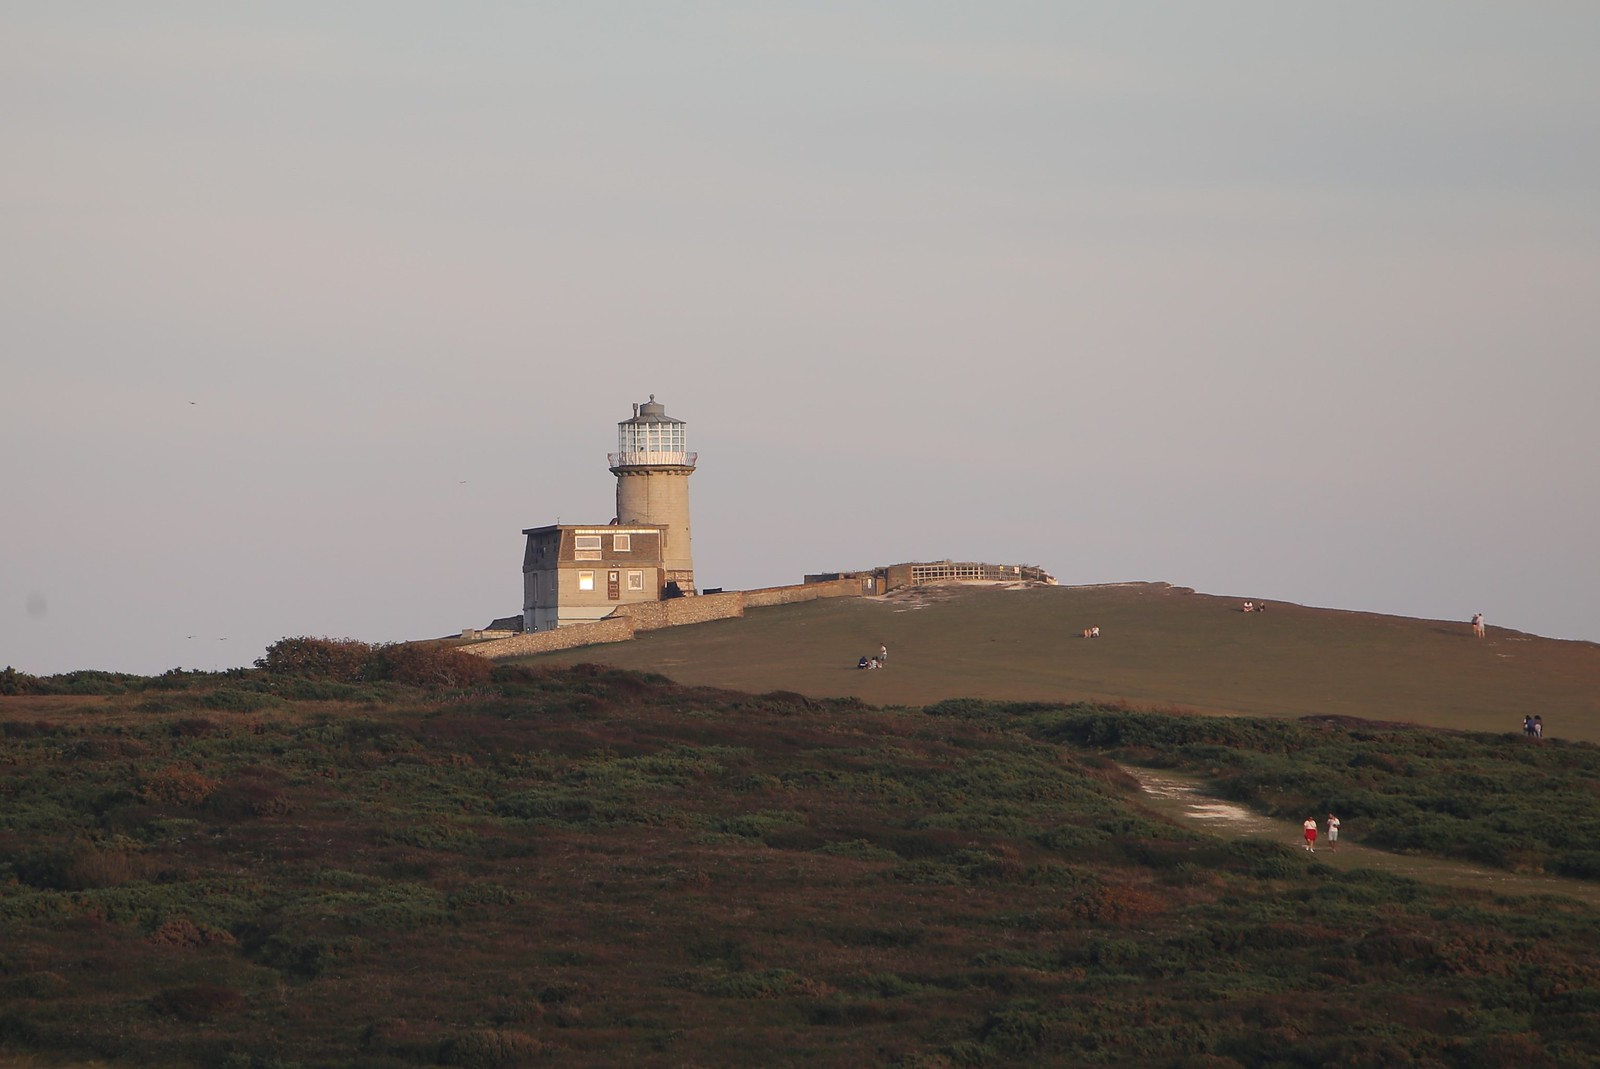 Belle Tout lighthouse - Beachy Head